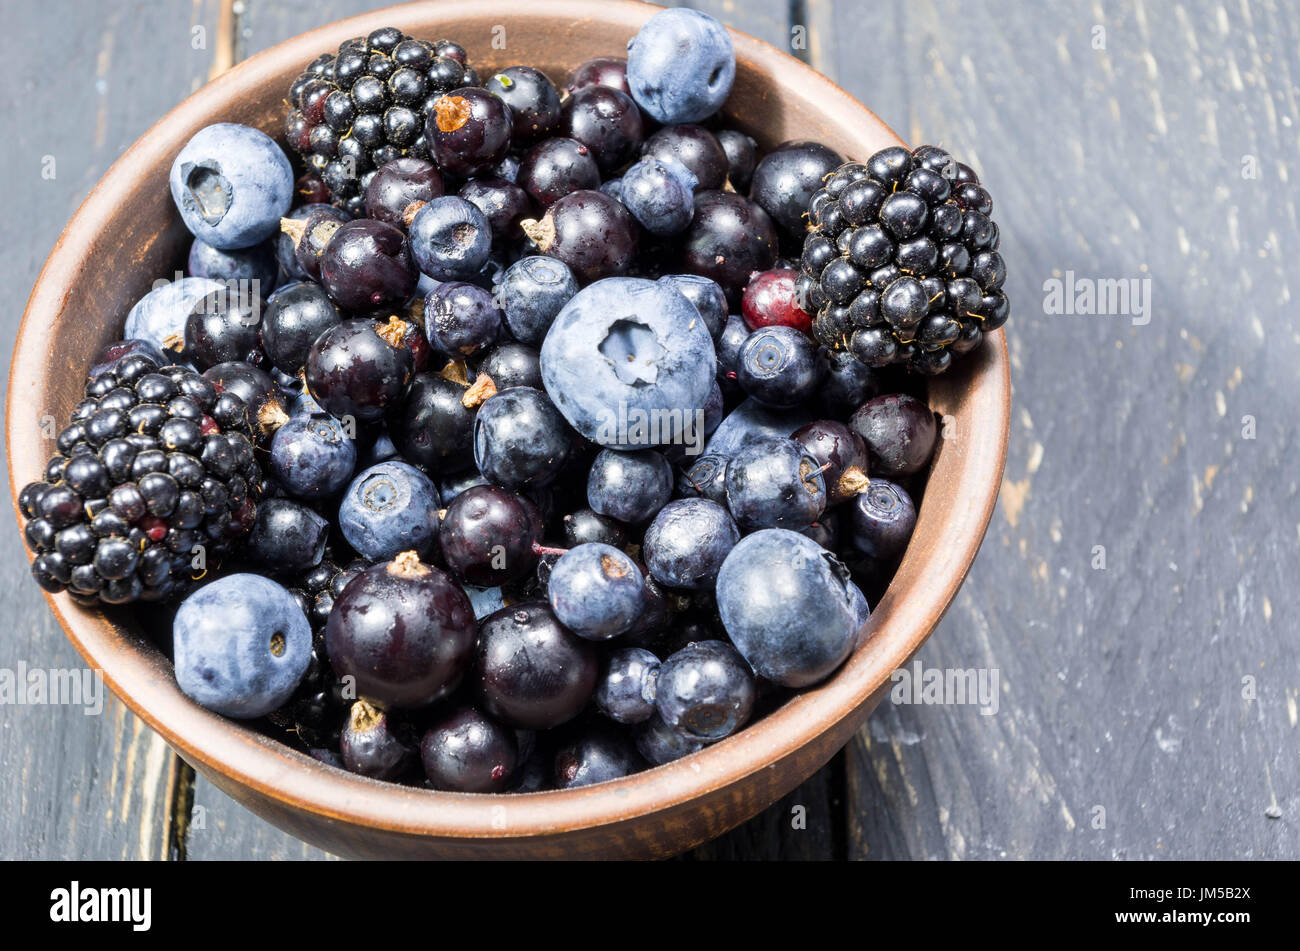 Photo of berries from close. Deep depth of field. Decoration of forest berries. - Stock Image